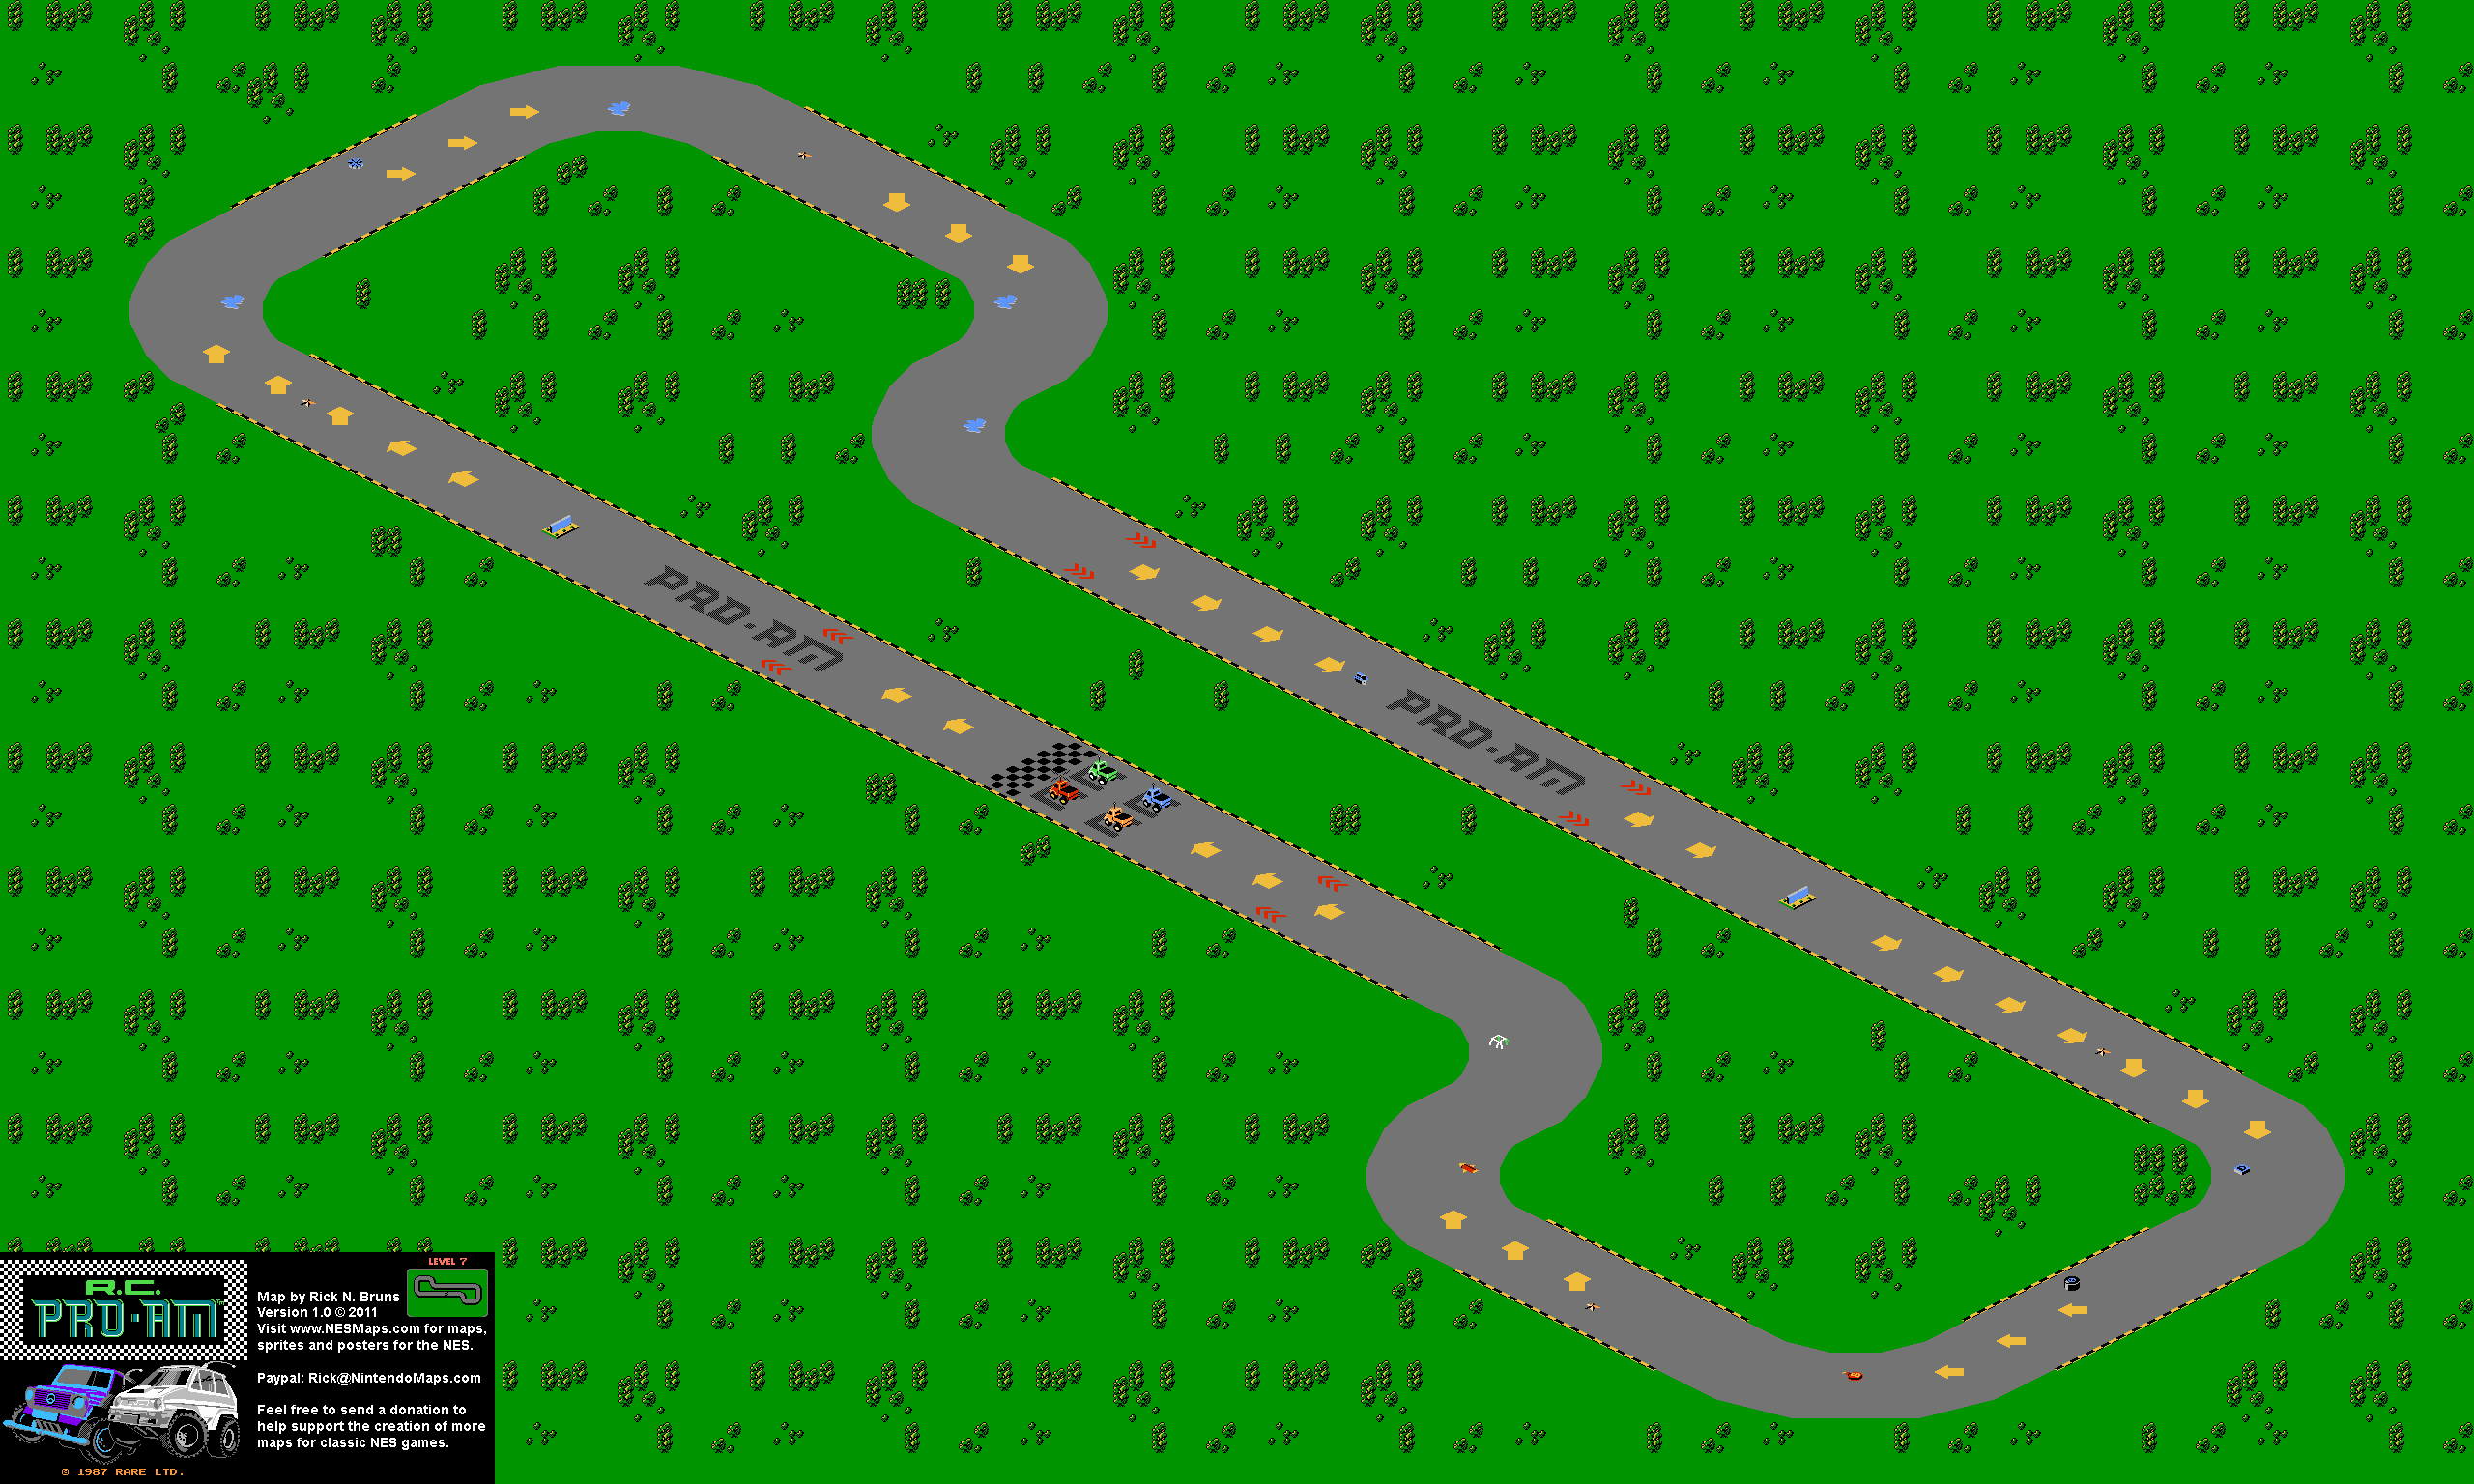 Level 07 Map (PNG)